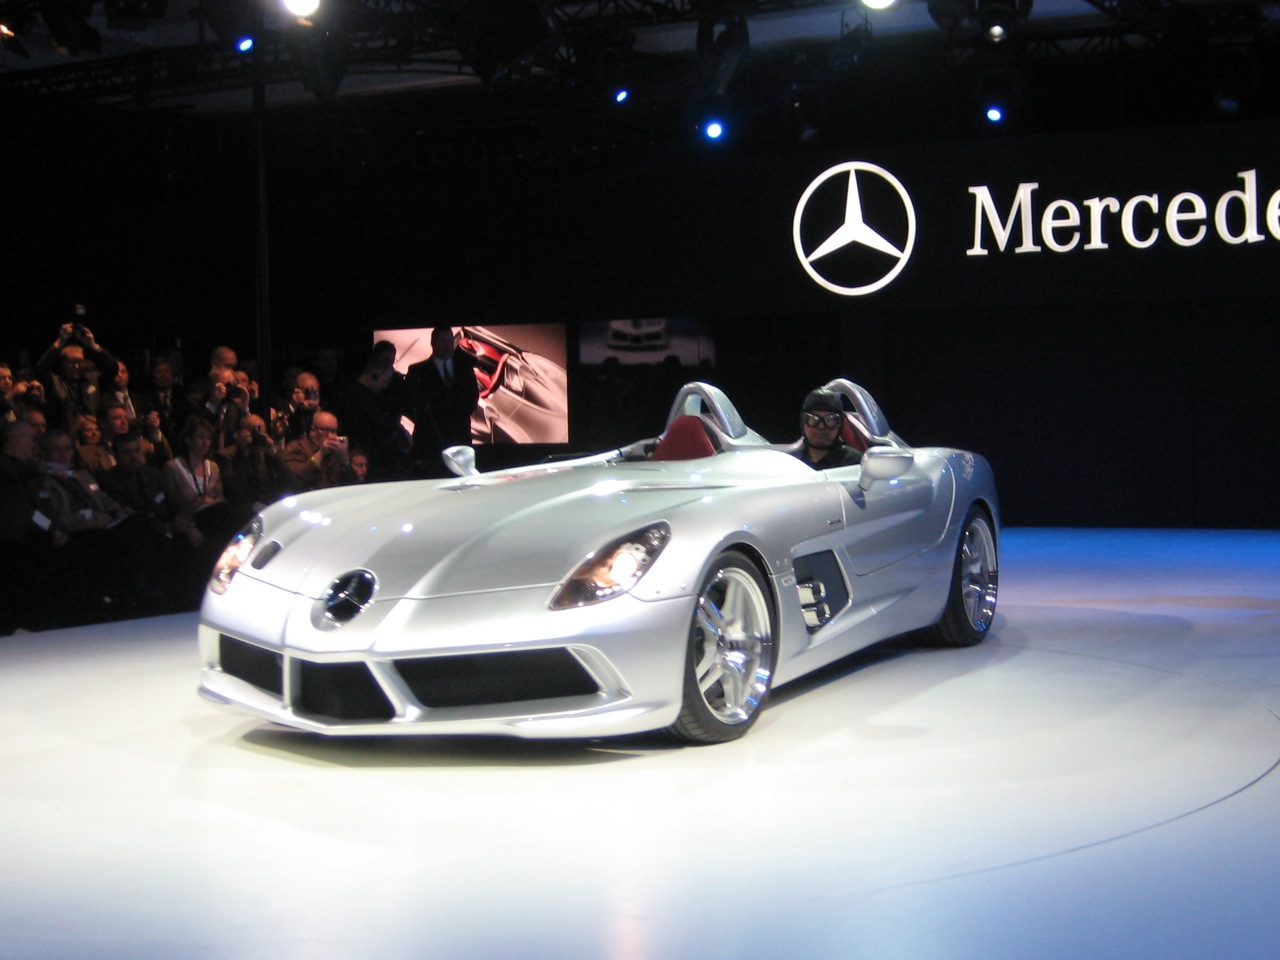 Jeep Certified Pre-Owned >> Detroit 2009: Mercedes Benz SLR Stirling Moss Photo ...